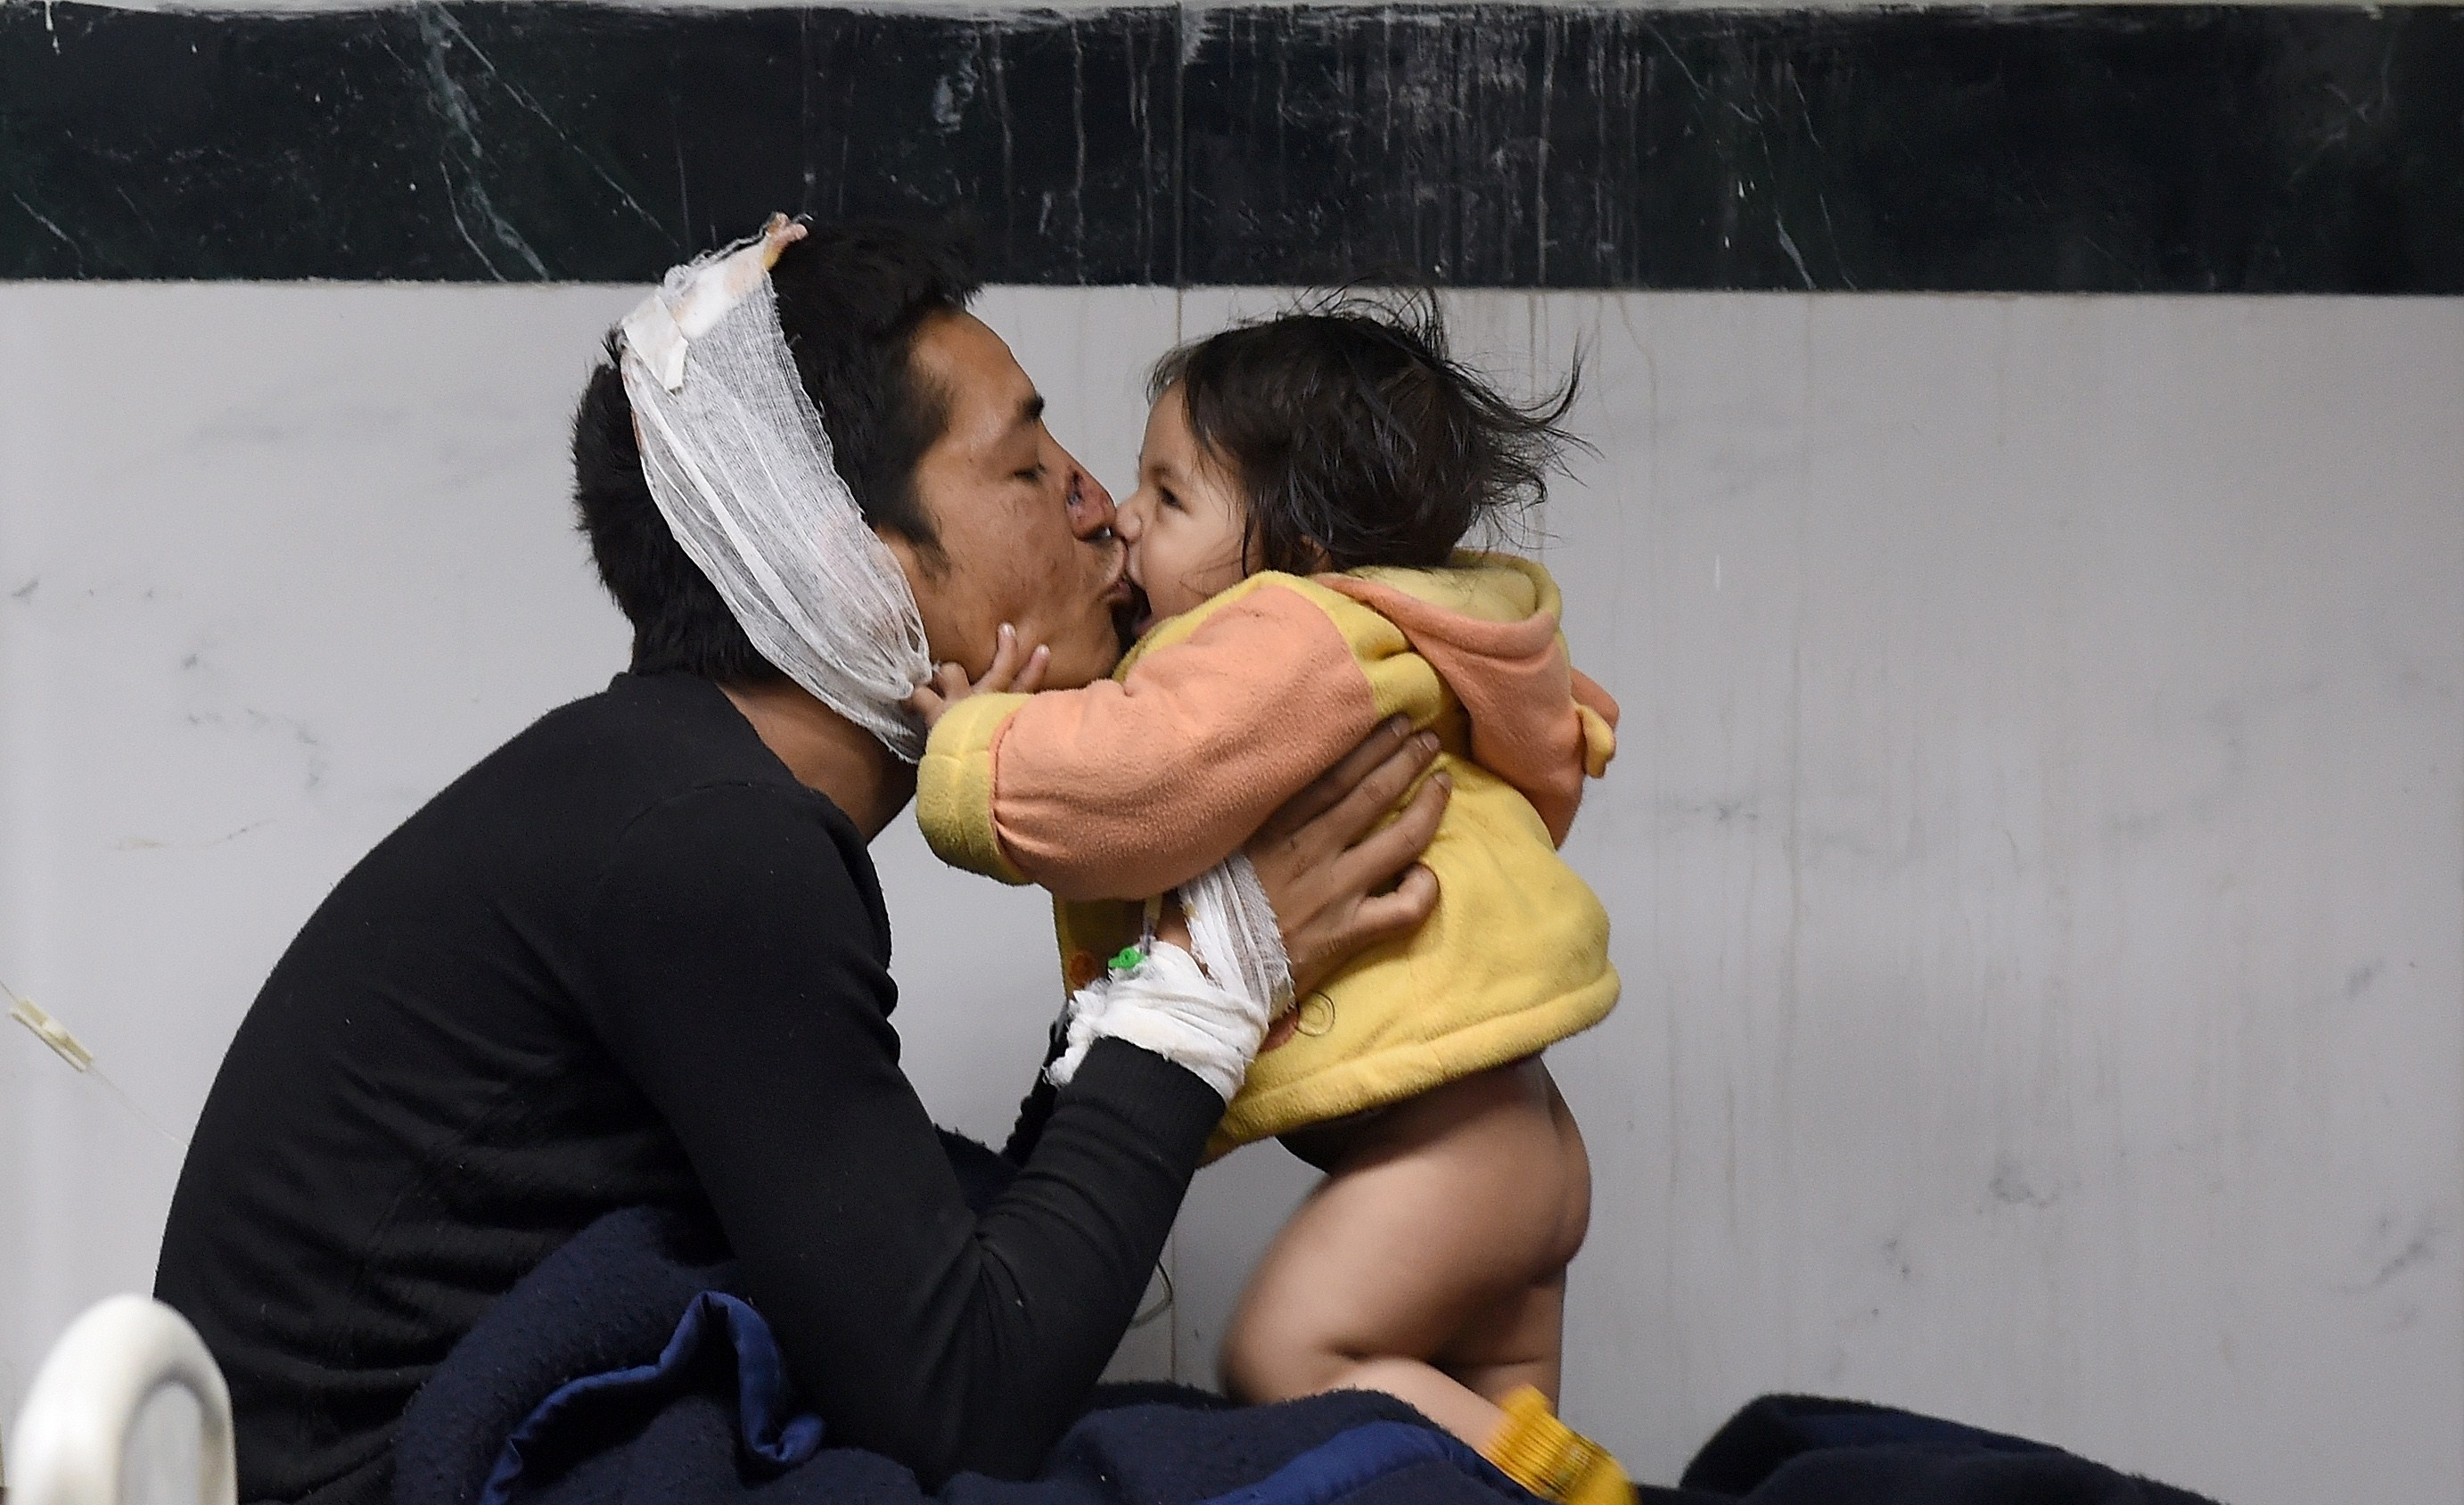 Nepalese resident Suresh Parihar plays with his 8-month-old daughter Sandhaya as he is treated for injuries sustained in an earthquake at a city hospital in Kathmandu on April 26, 2015. Photo byPrakash Singh/AFP/Getty Images.